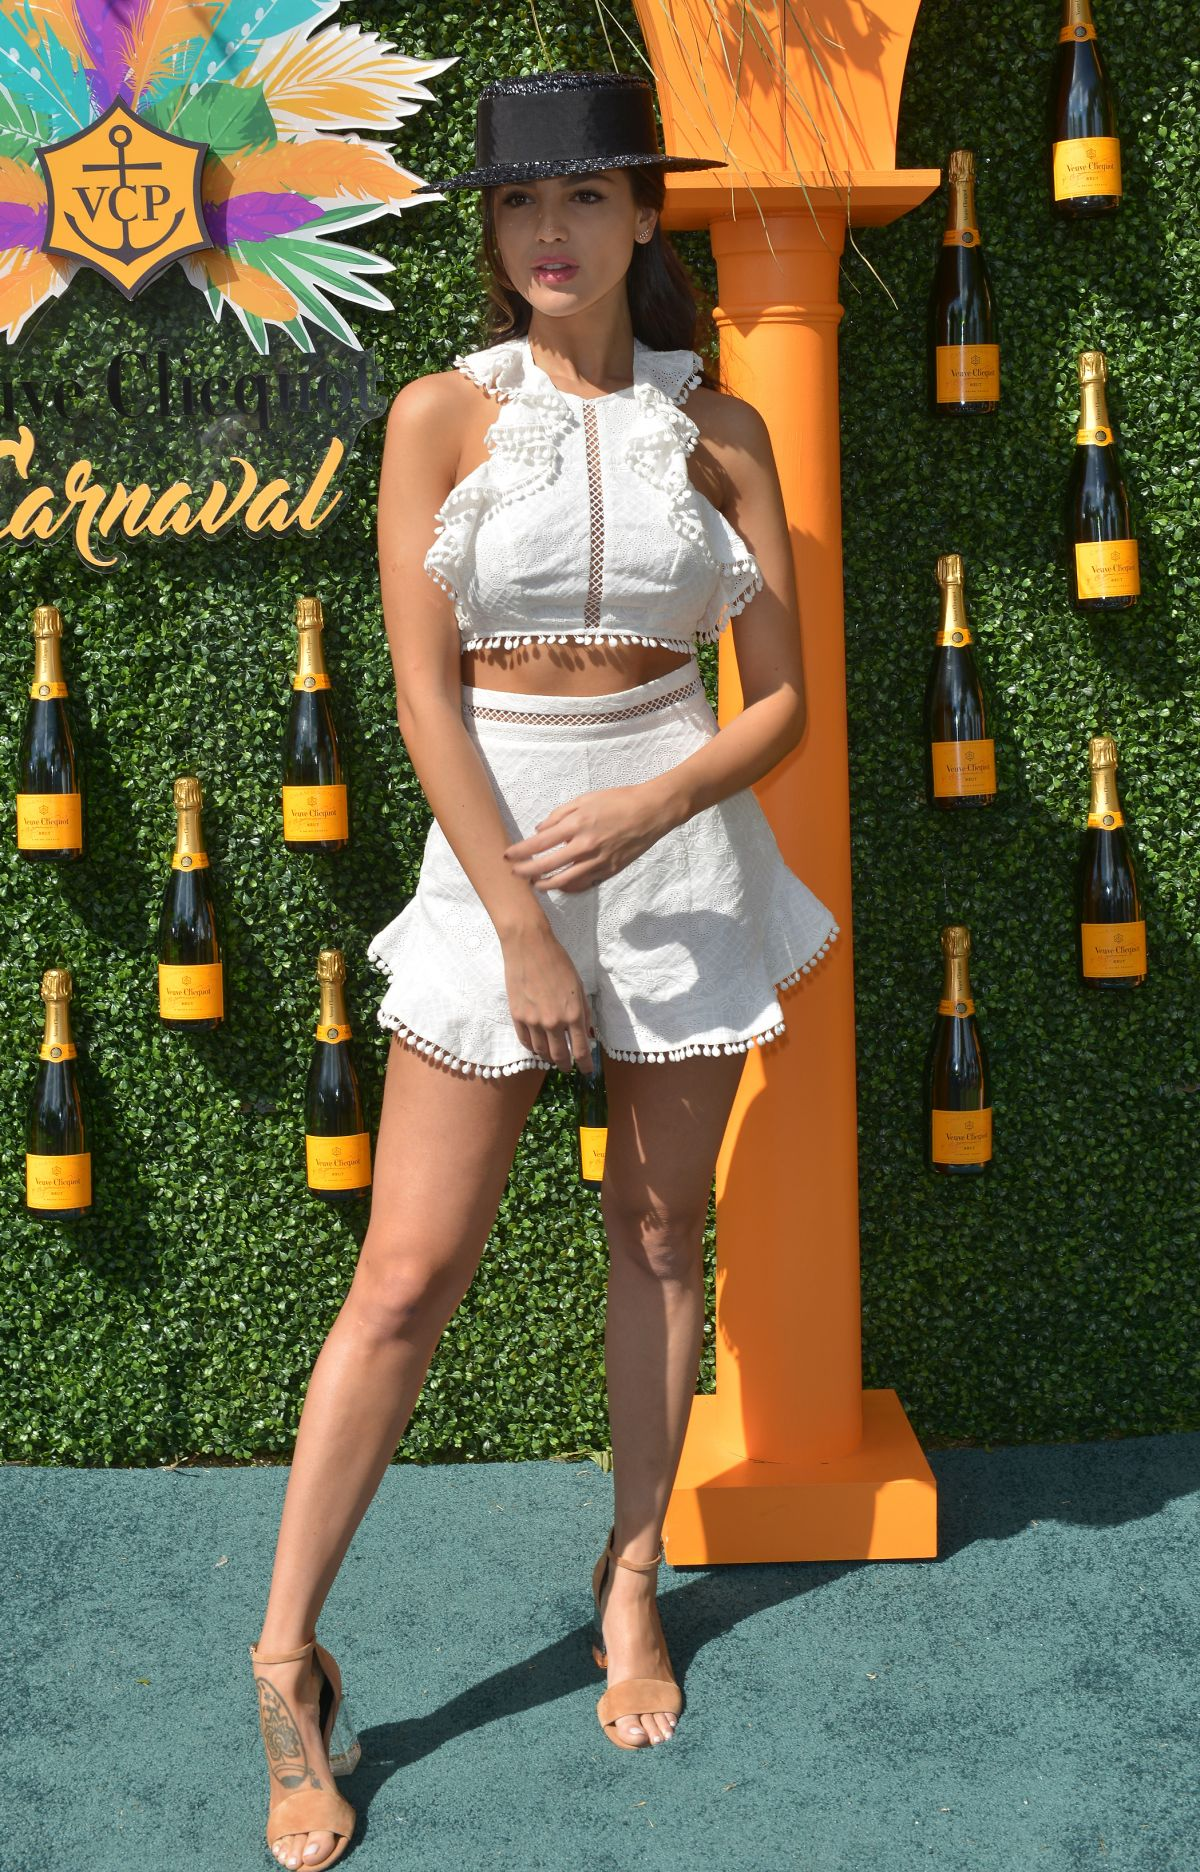 Eiza Gonzalez At Clicquot Carnaval in Miami